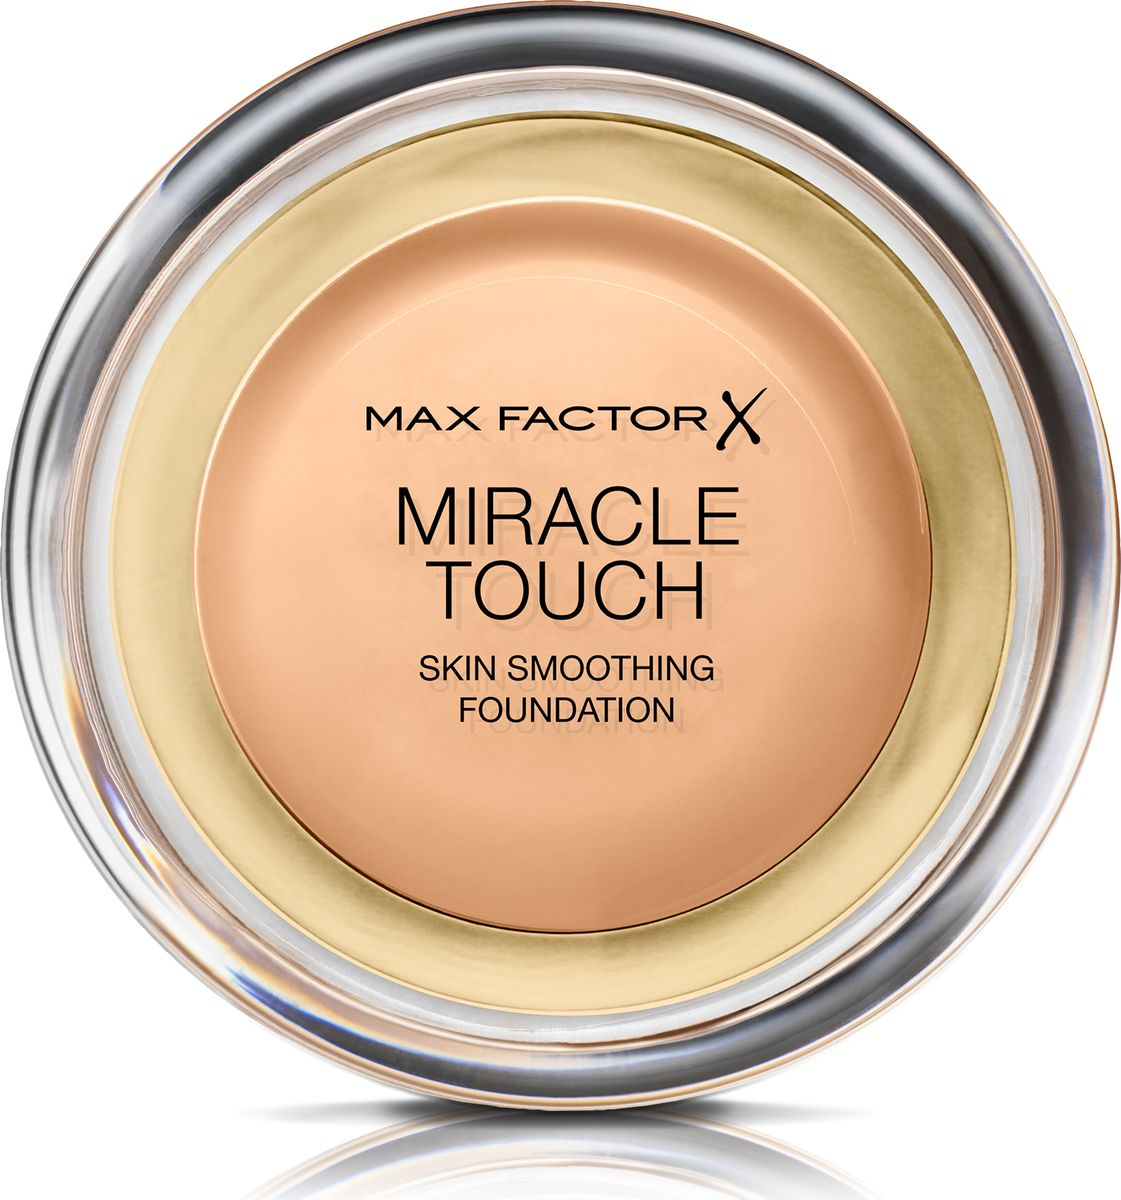 Max Factor Тональная Основа Miracle Touch Тон 75 golden 11,5 гр тональная основа max factor miracle match тон 80